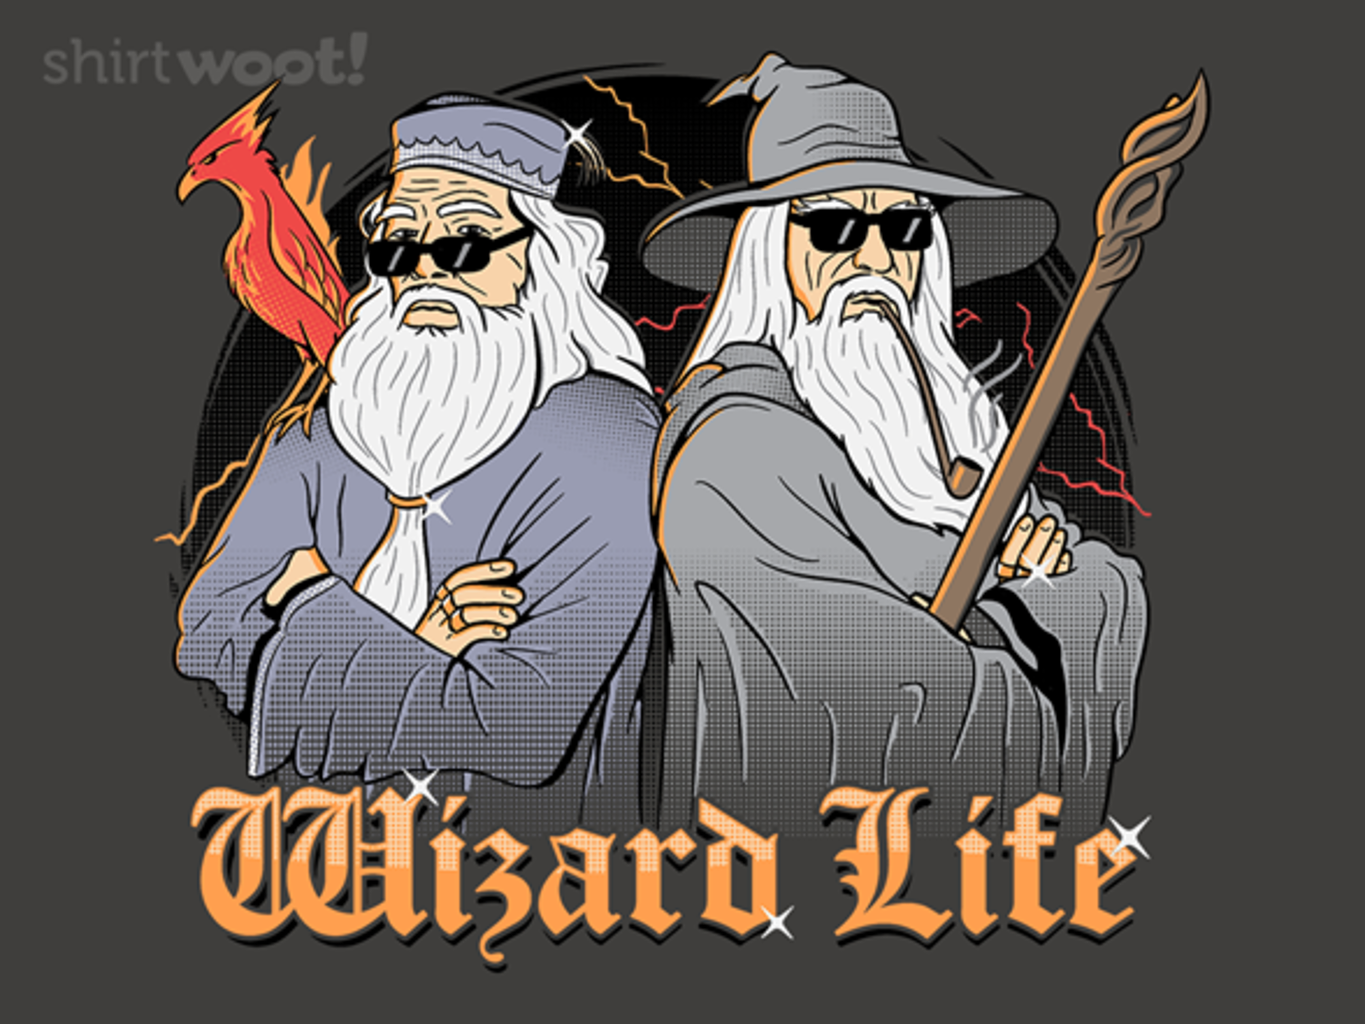 Woot!: The Wizard Life